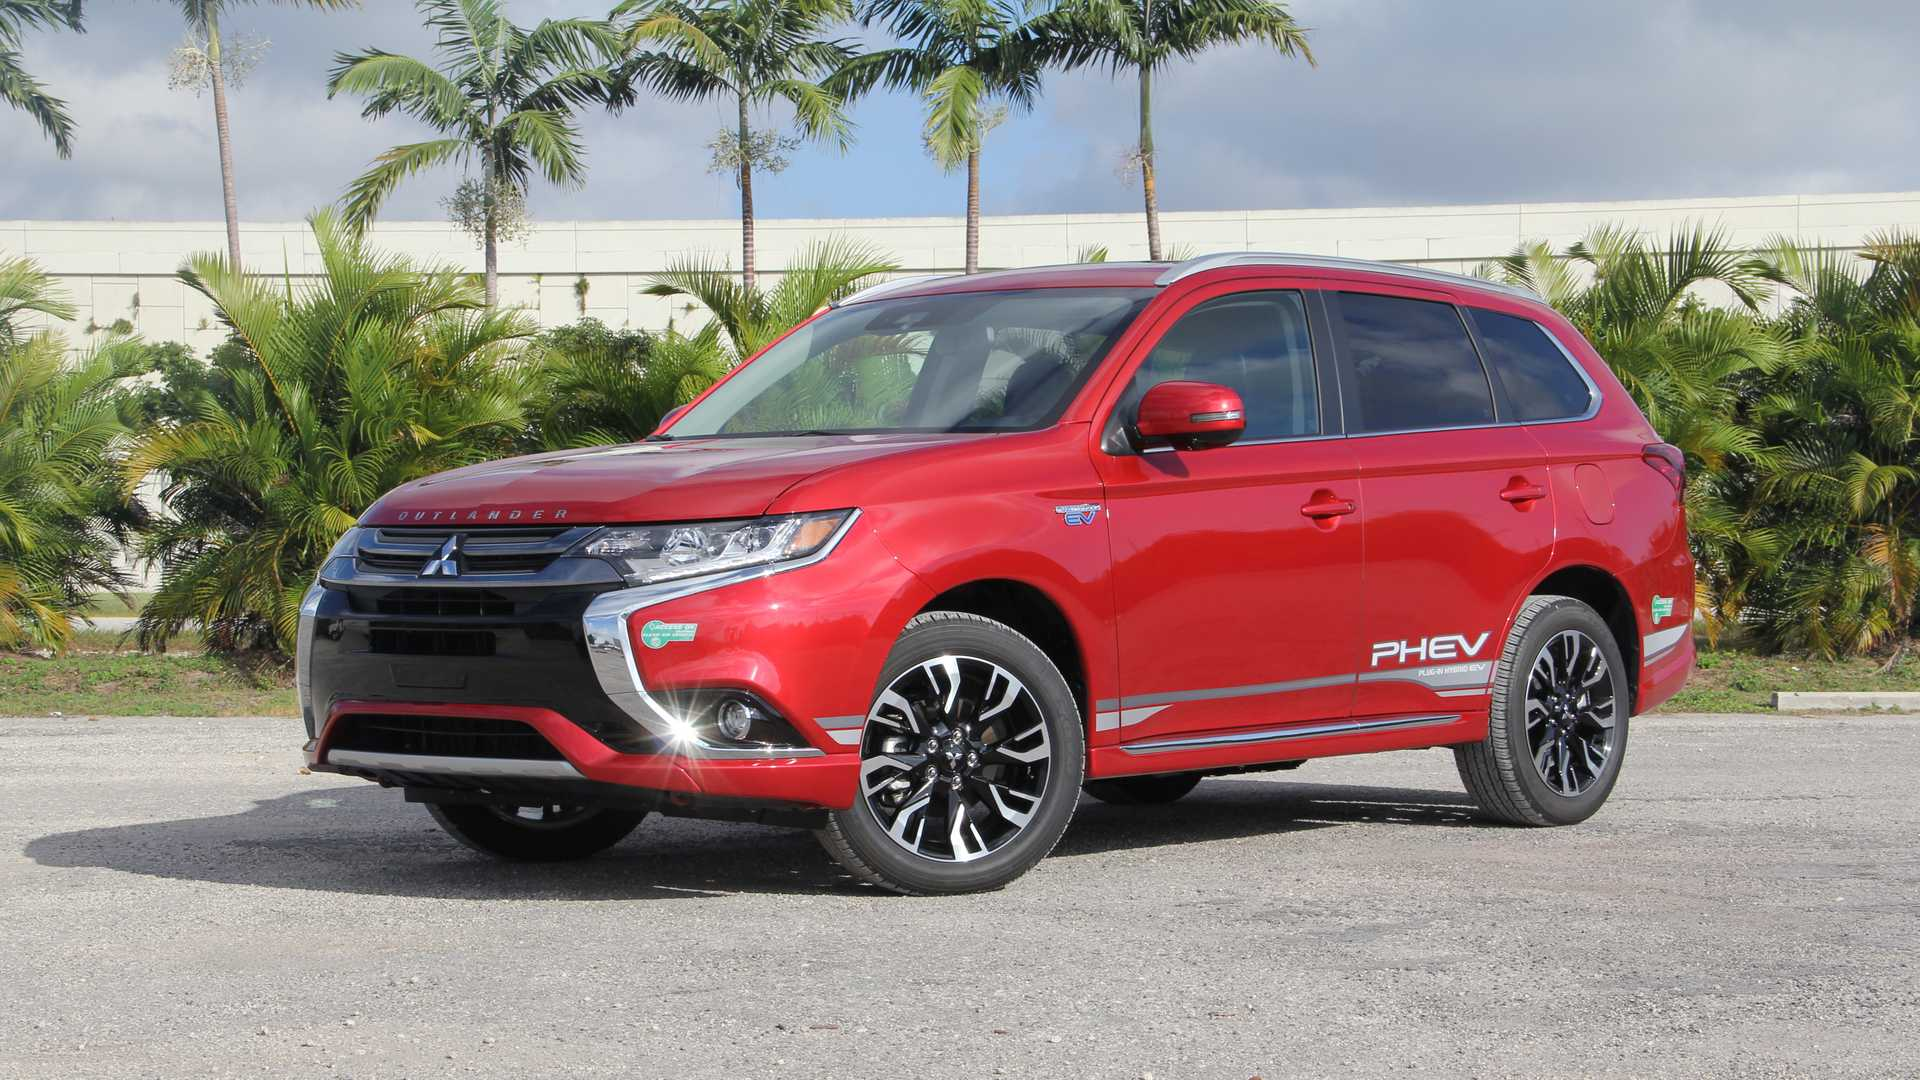 2018 Mitsubishi Outlander Phev Gt Review Plug It In Plug It In